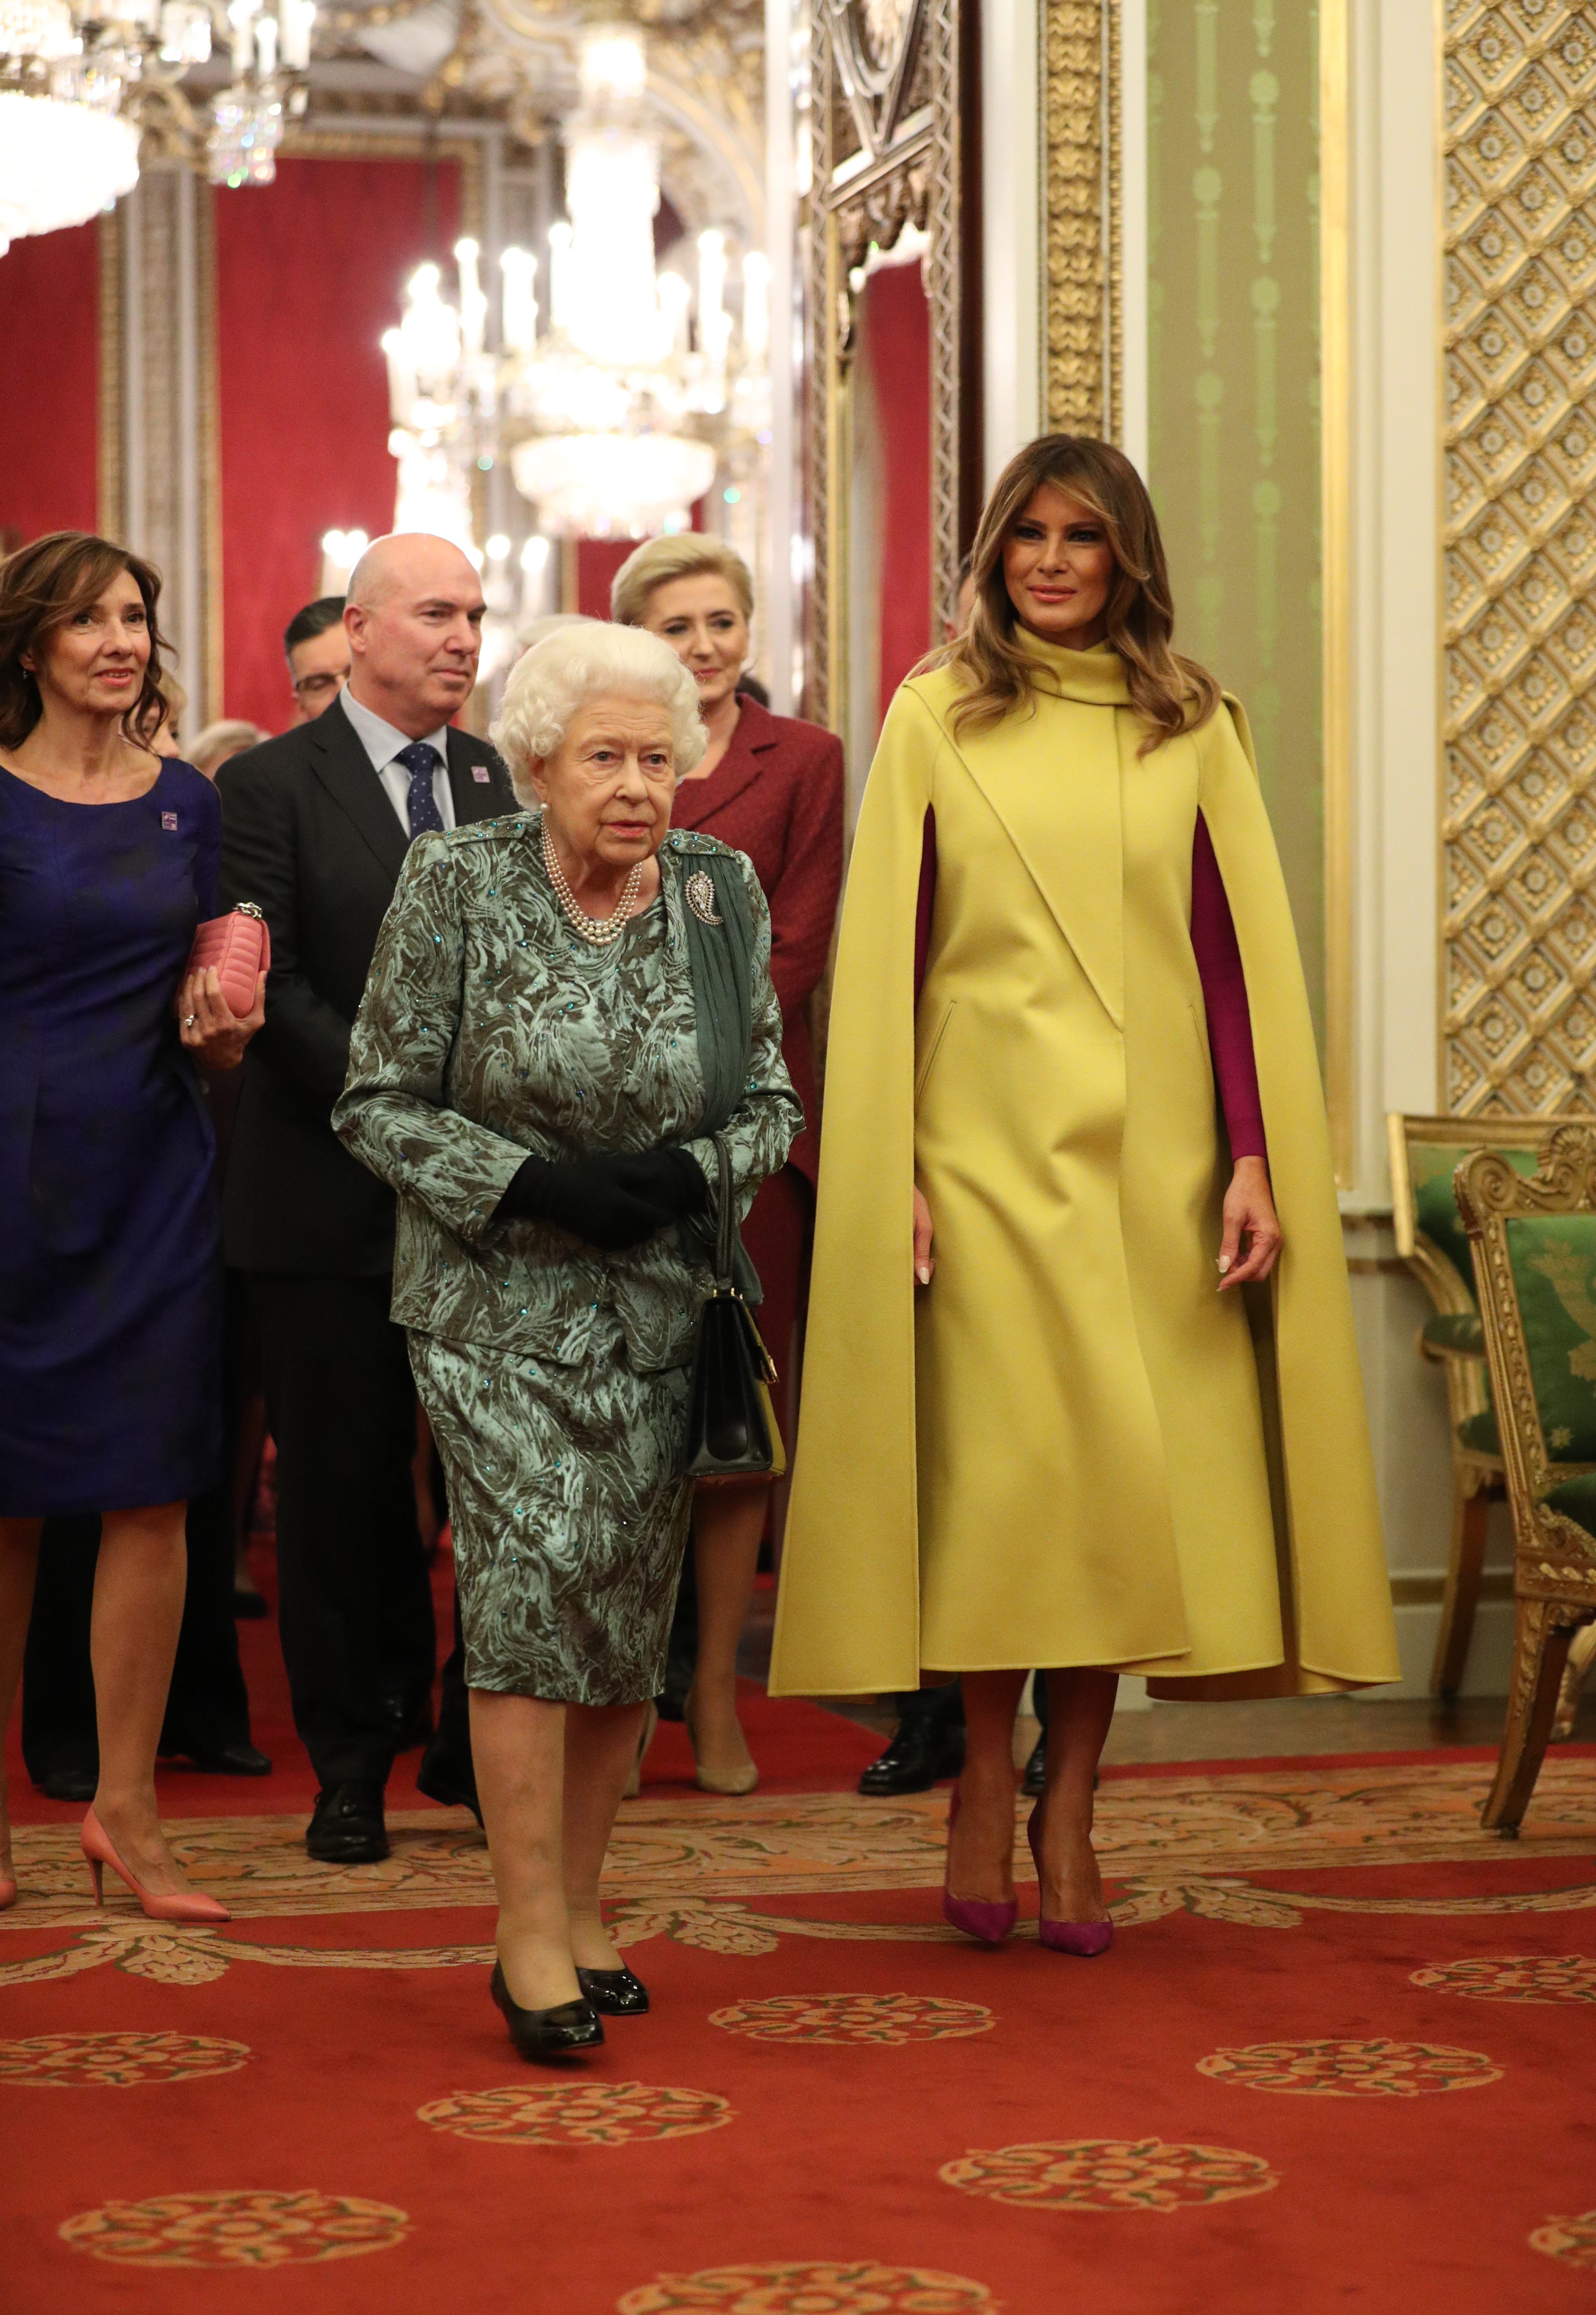 Queen Elizabeth II with Melania Trump during the reception in Buckingham Palace, London, as Nato leaders gather to mark 70 years of the alliance.